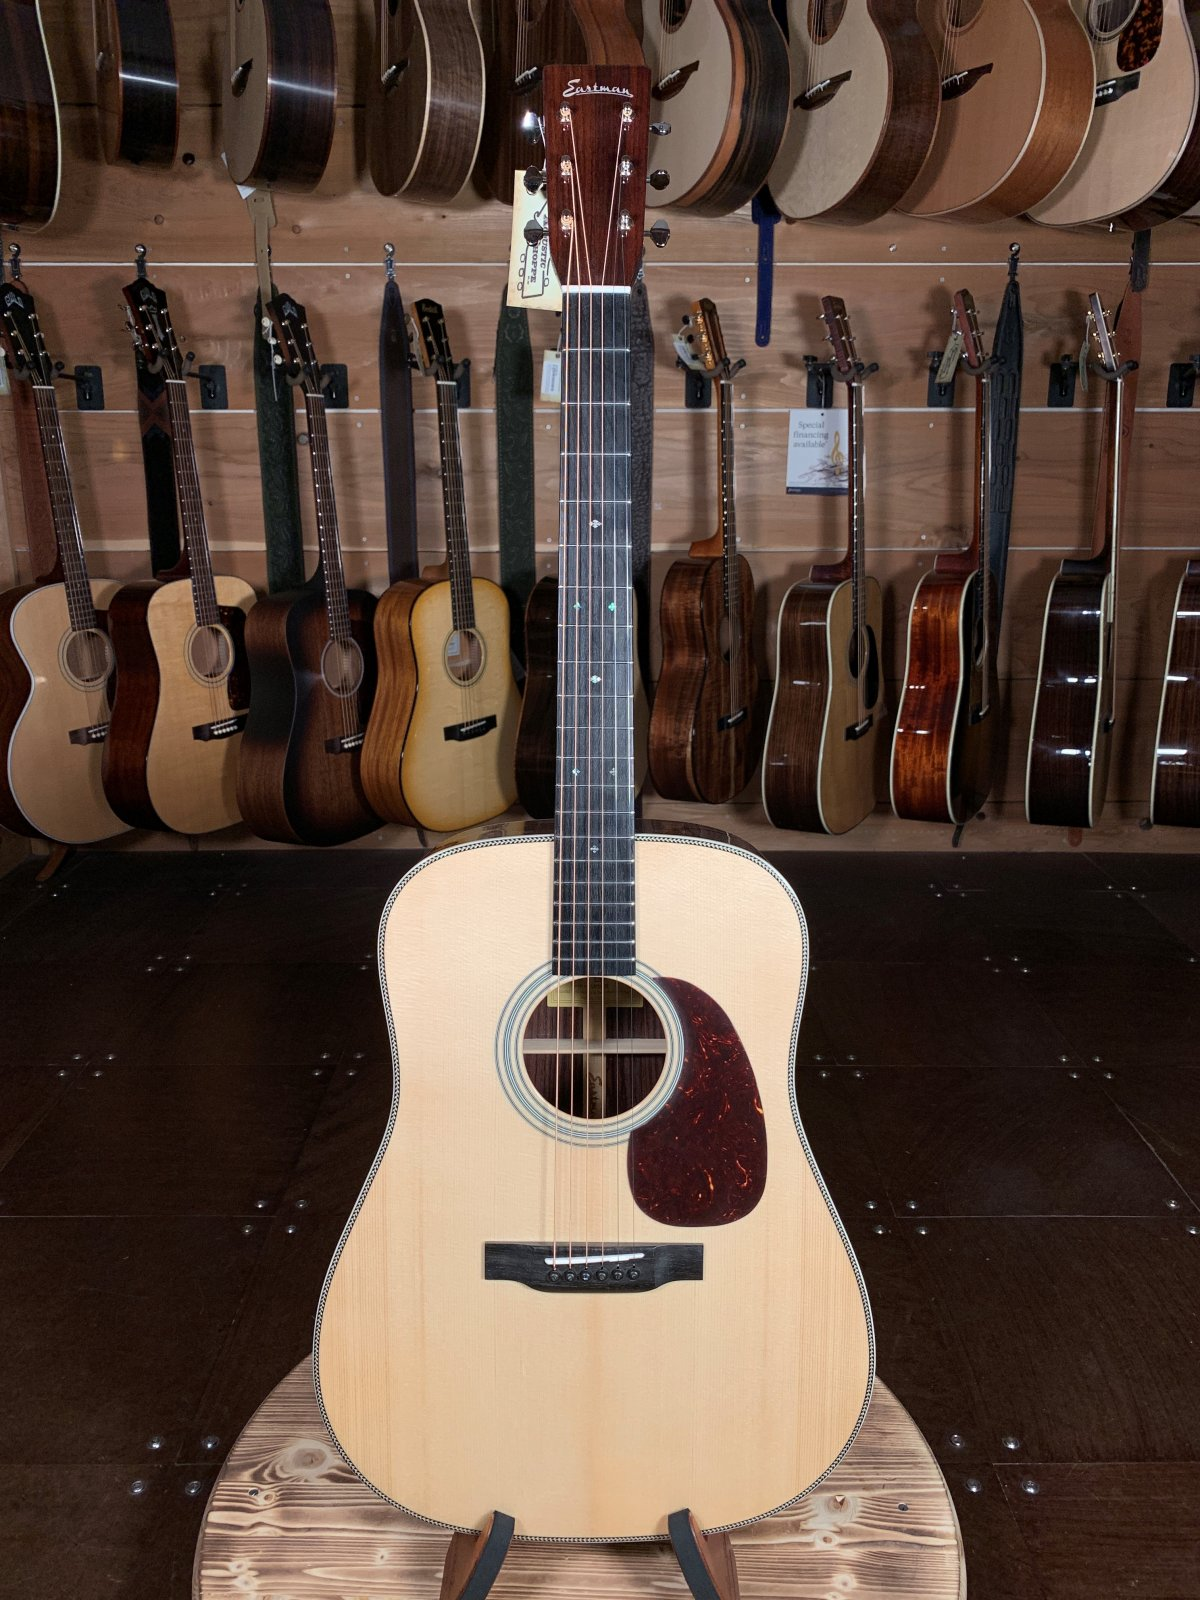 Eastman E8D Natural Spruce/Rosewood Dreadnought Acoustic #6316